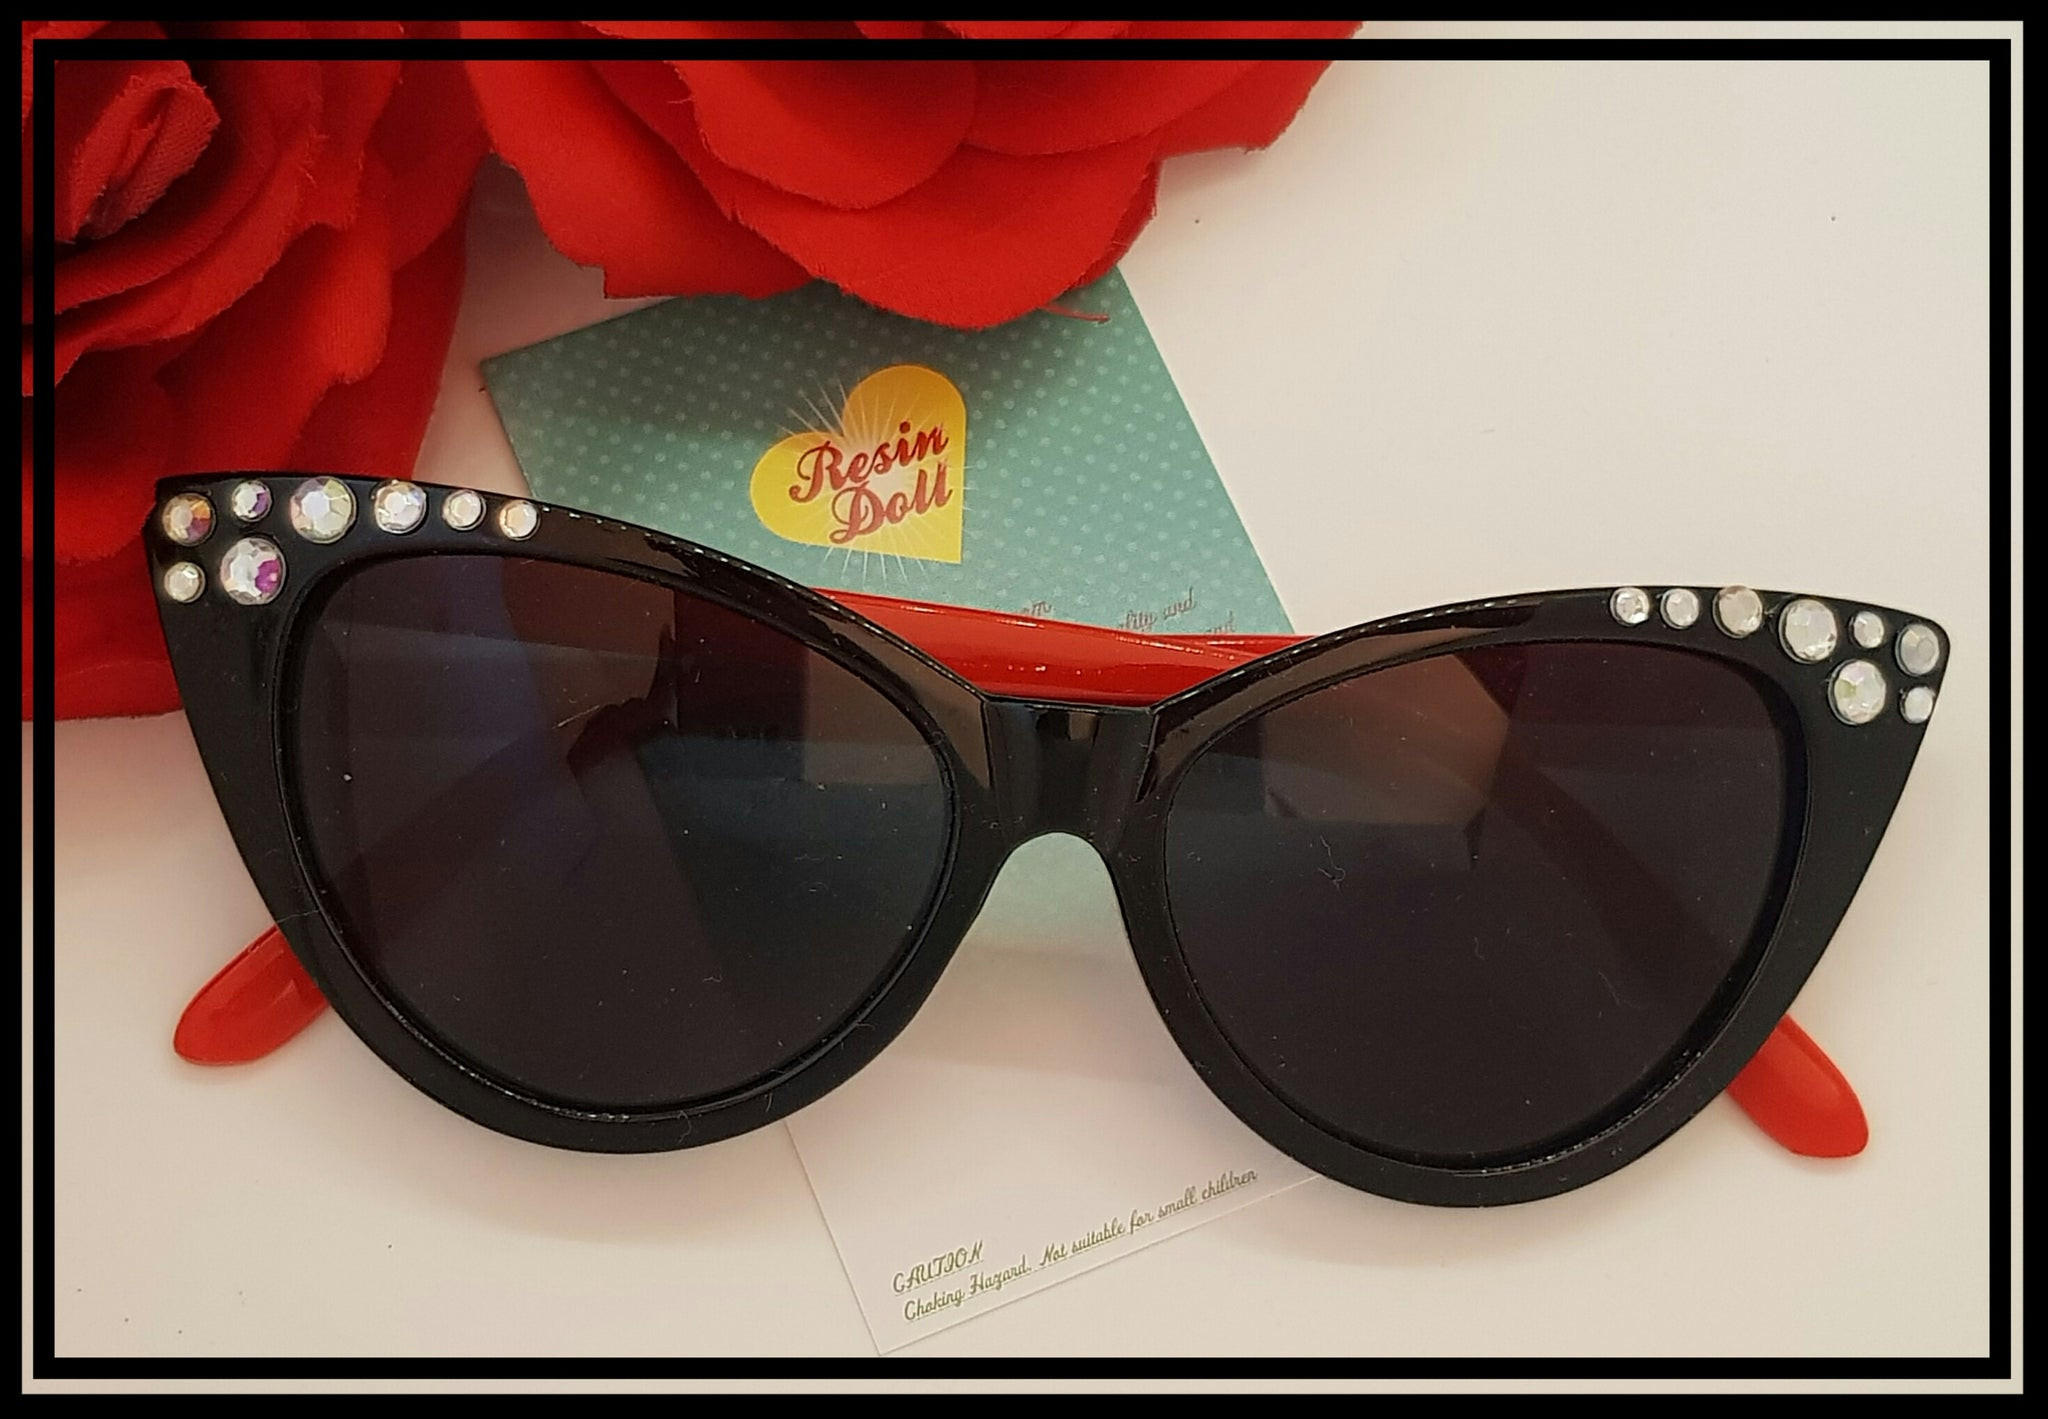 Black frame red arms sunglasses top bling